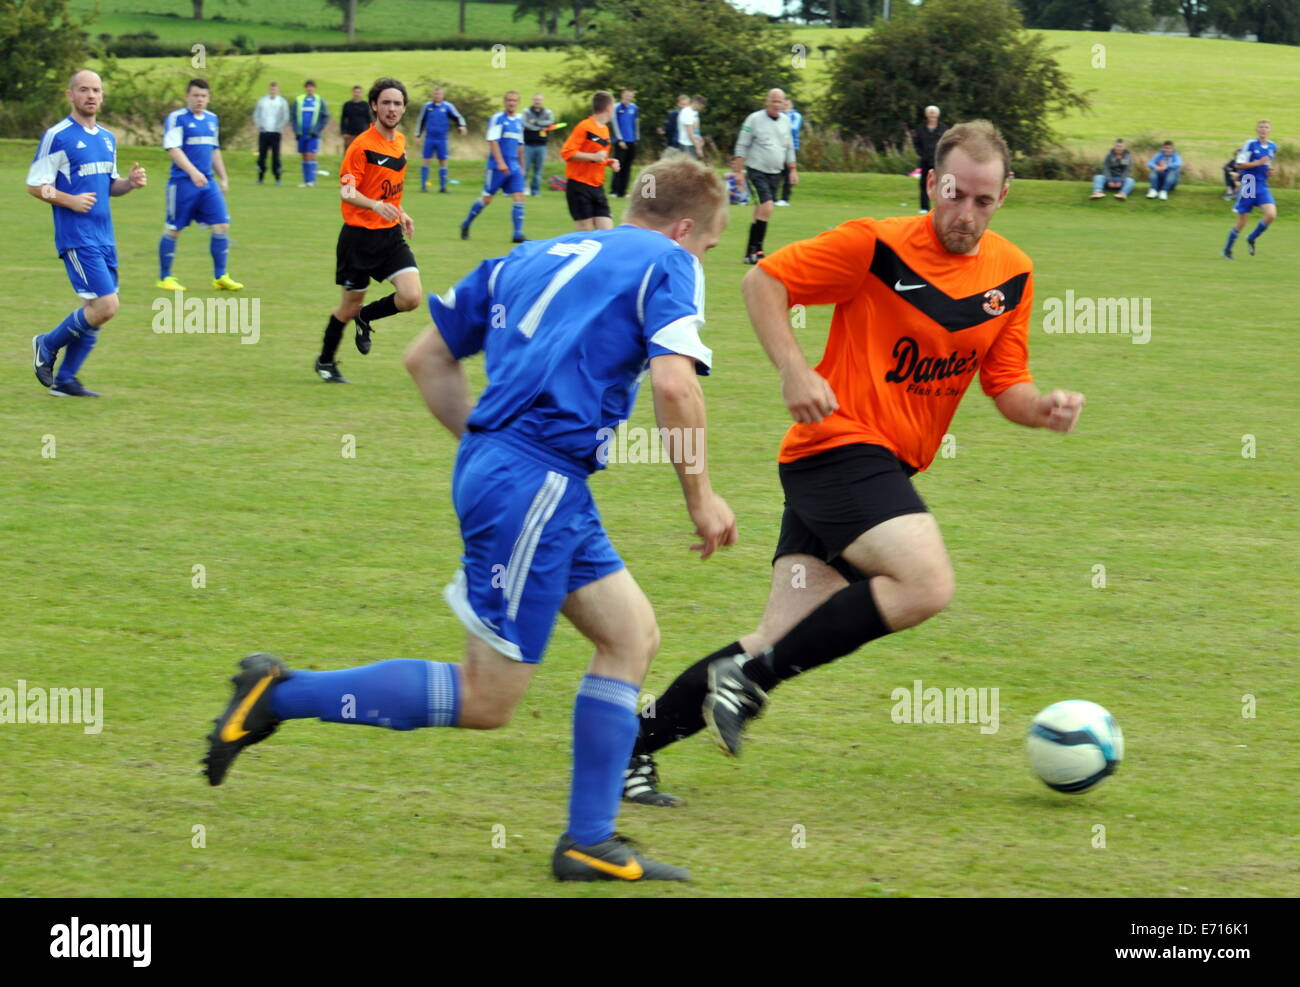 Dumfries Sunday Amateur Football League Kings Arms 2 Jolly Harvester 1 Whitehills Park Lochmaben Sunday August 24th - Stock Image